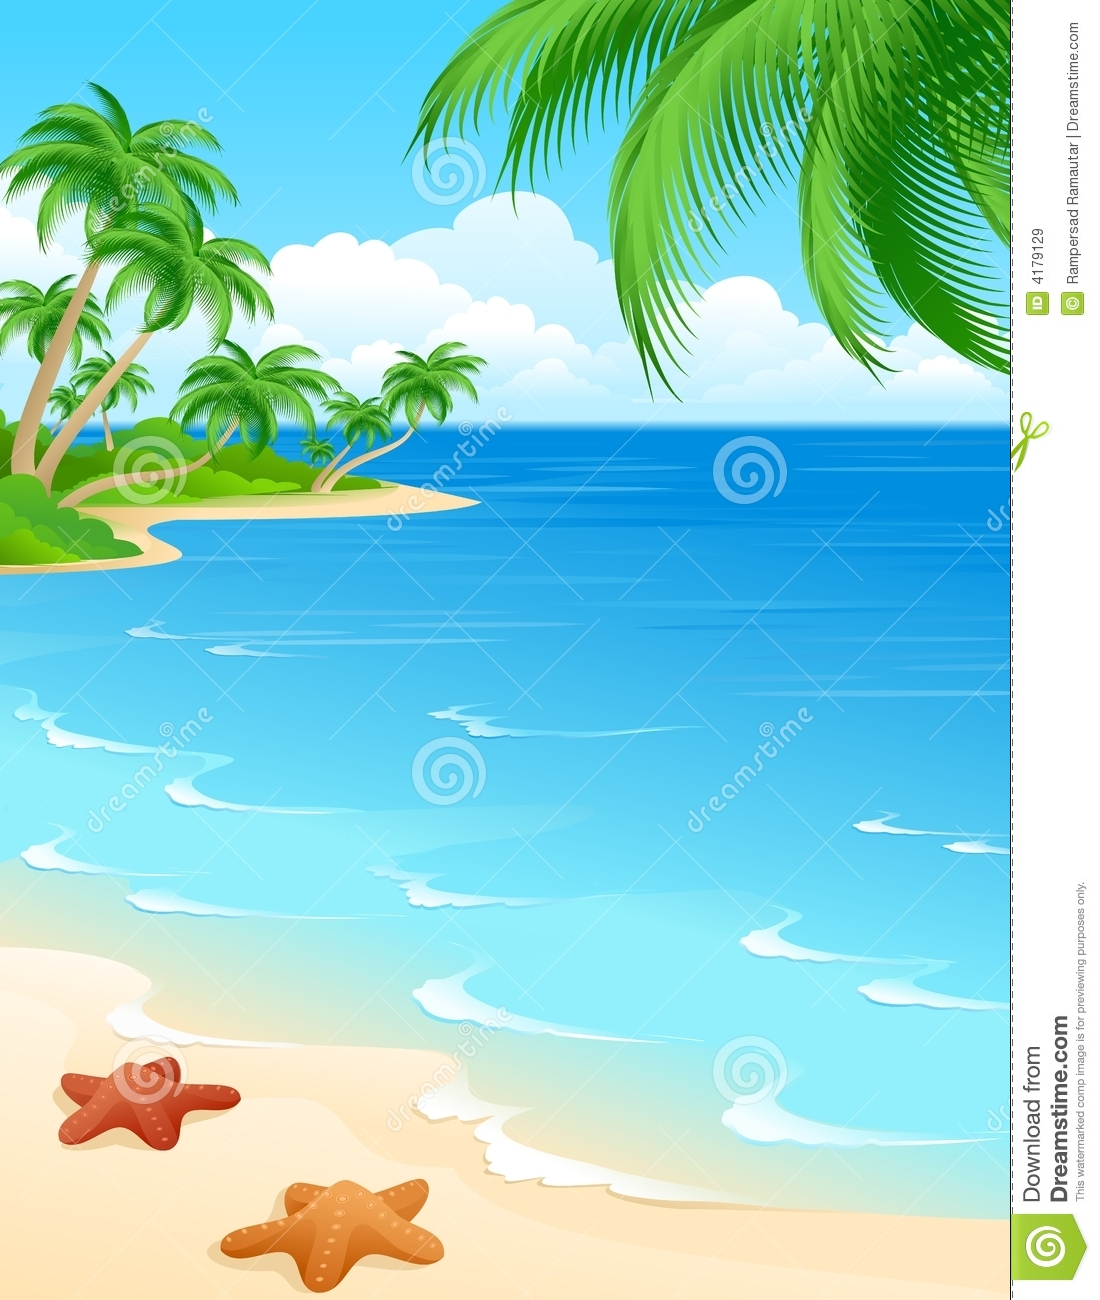 clipart beach scenes - photo #26